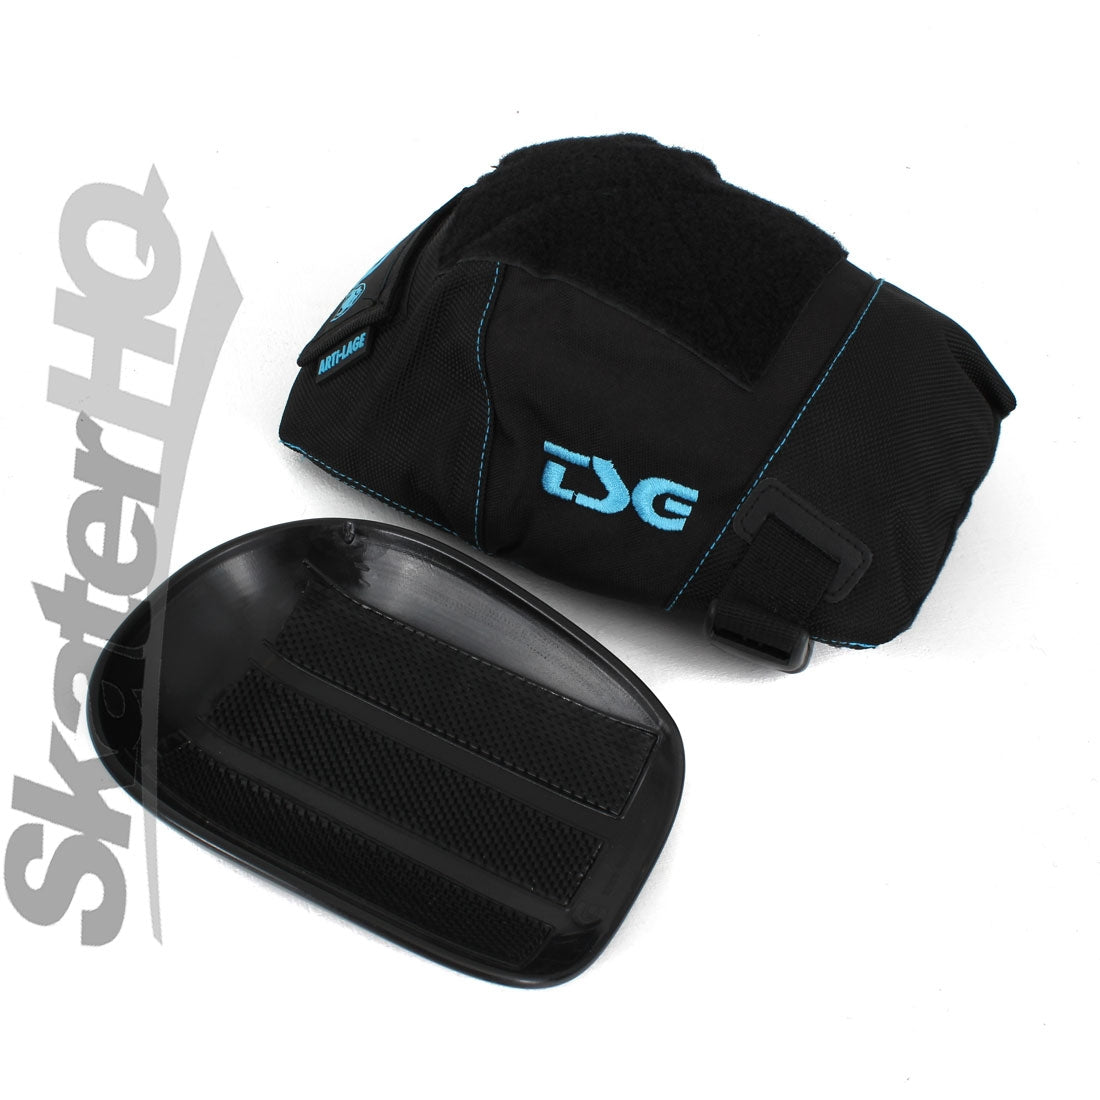 TSG Force V Arti-Lage Kneepads - Medium